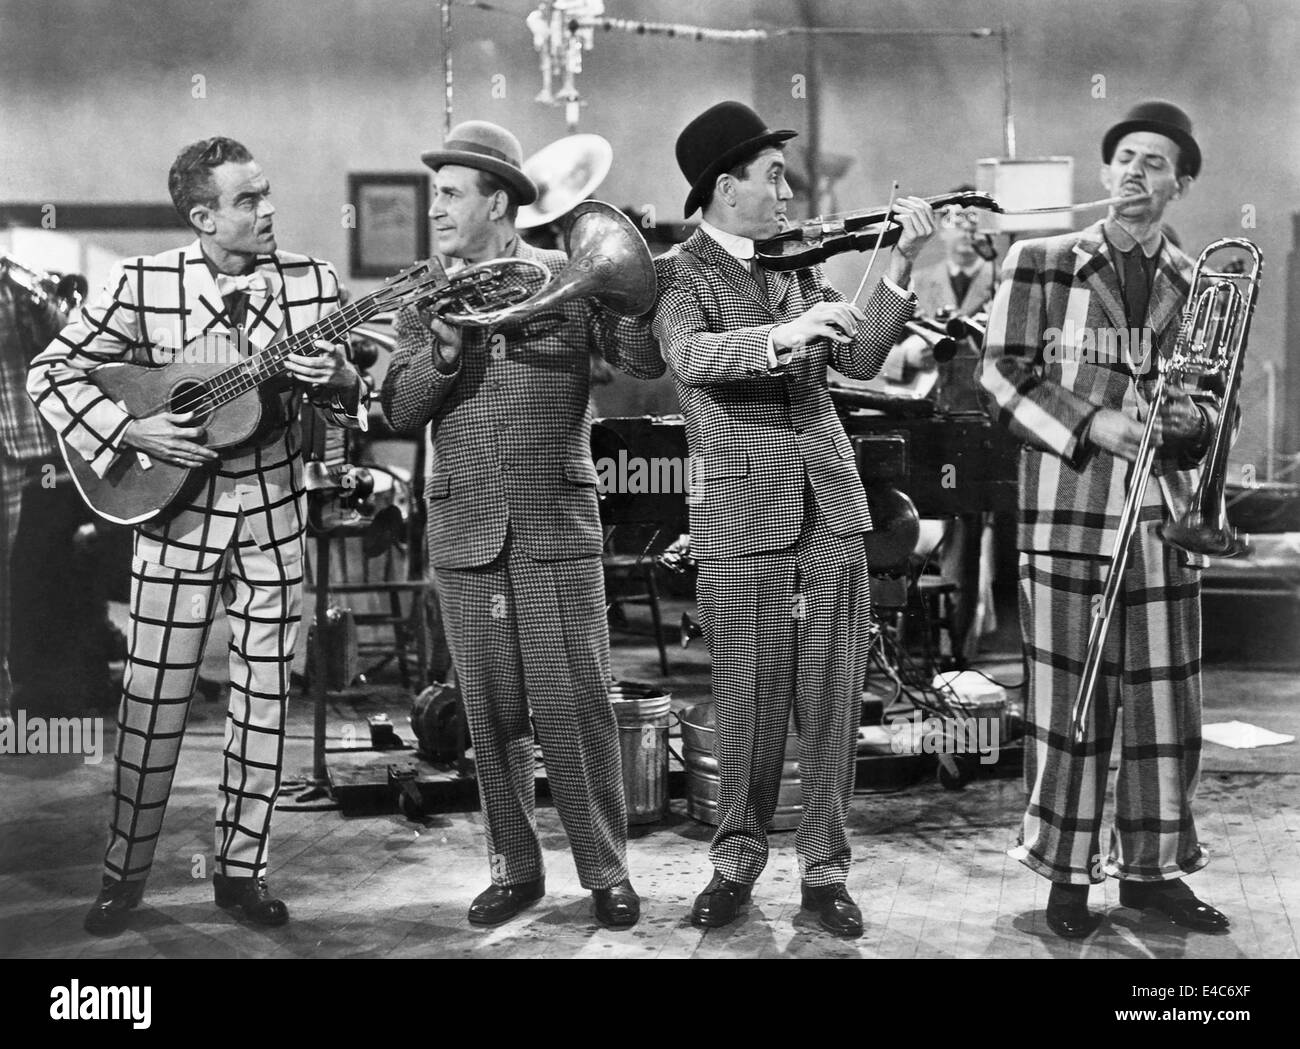 Spike Jones And His City Slickers - Dance Of The Hours / None But The Lonely Heart